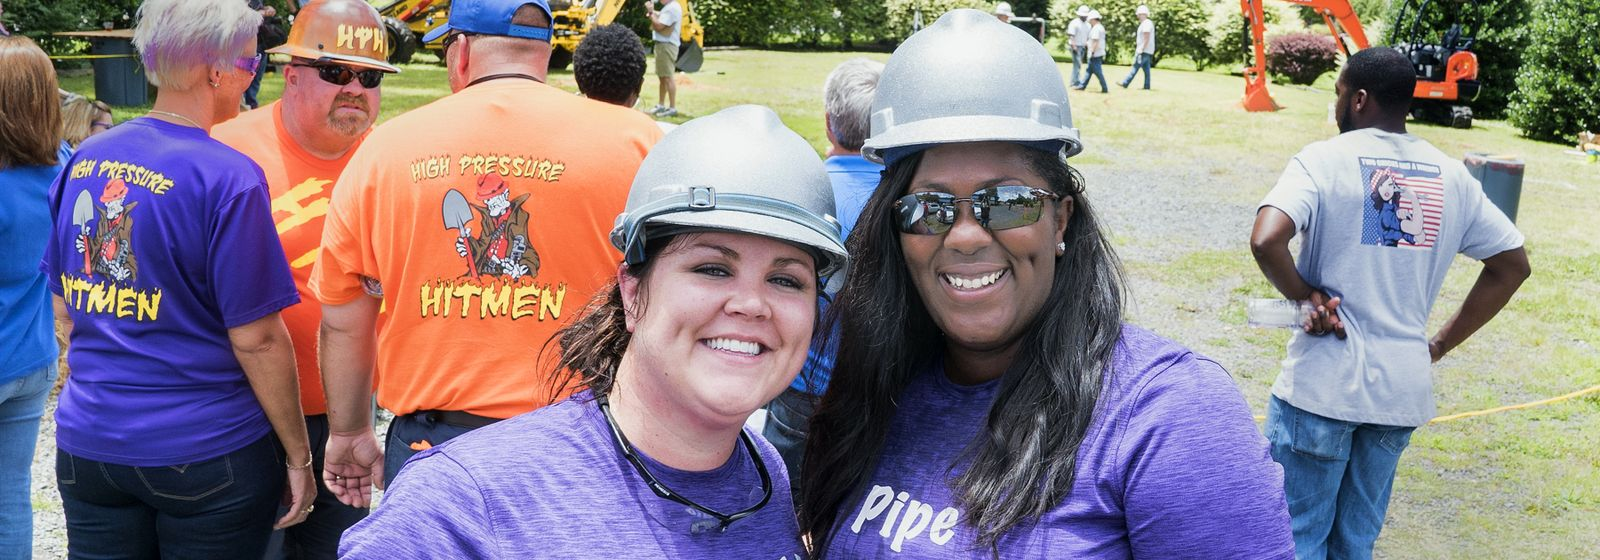 2 Nashville women on their way to natural gas rodeo